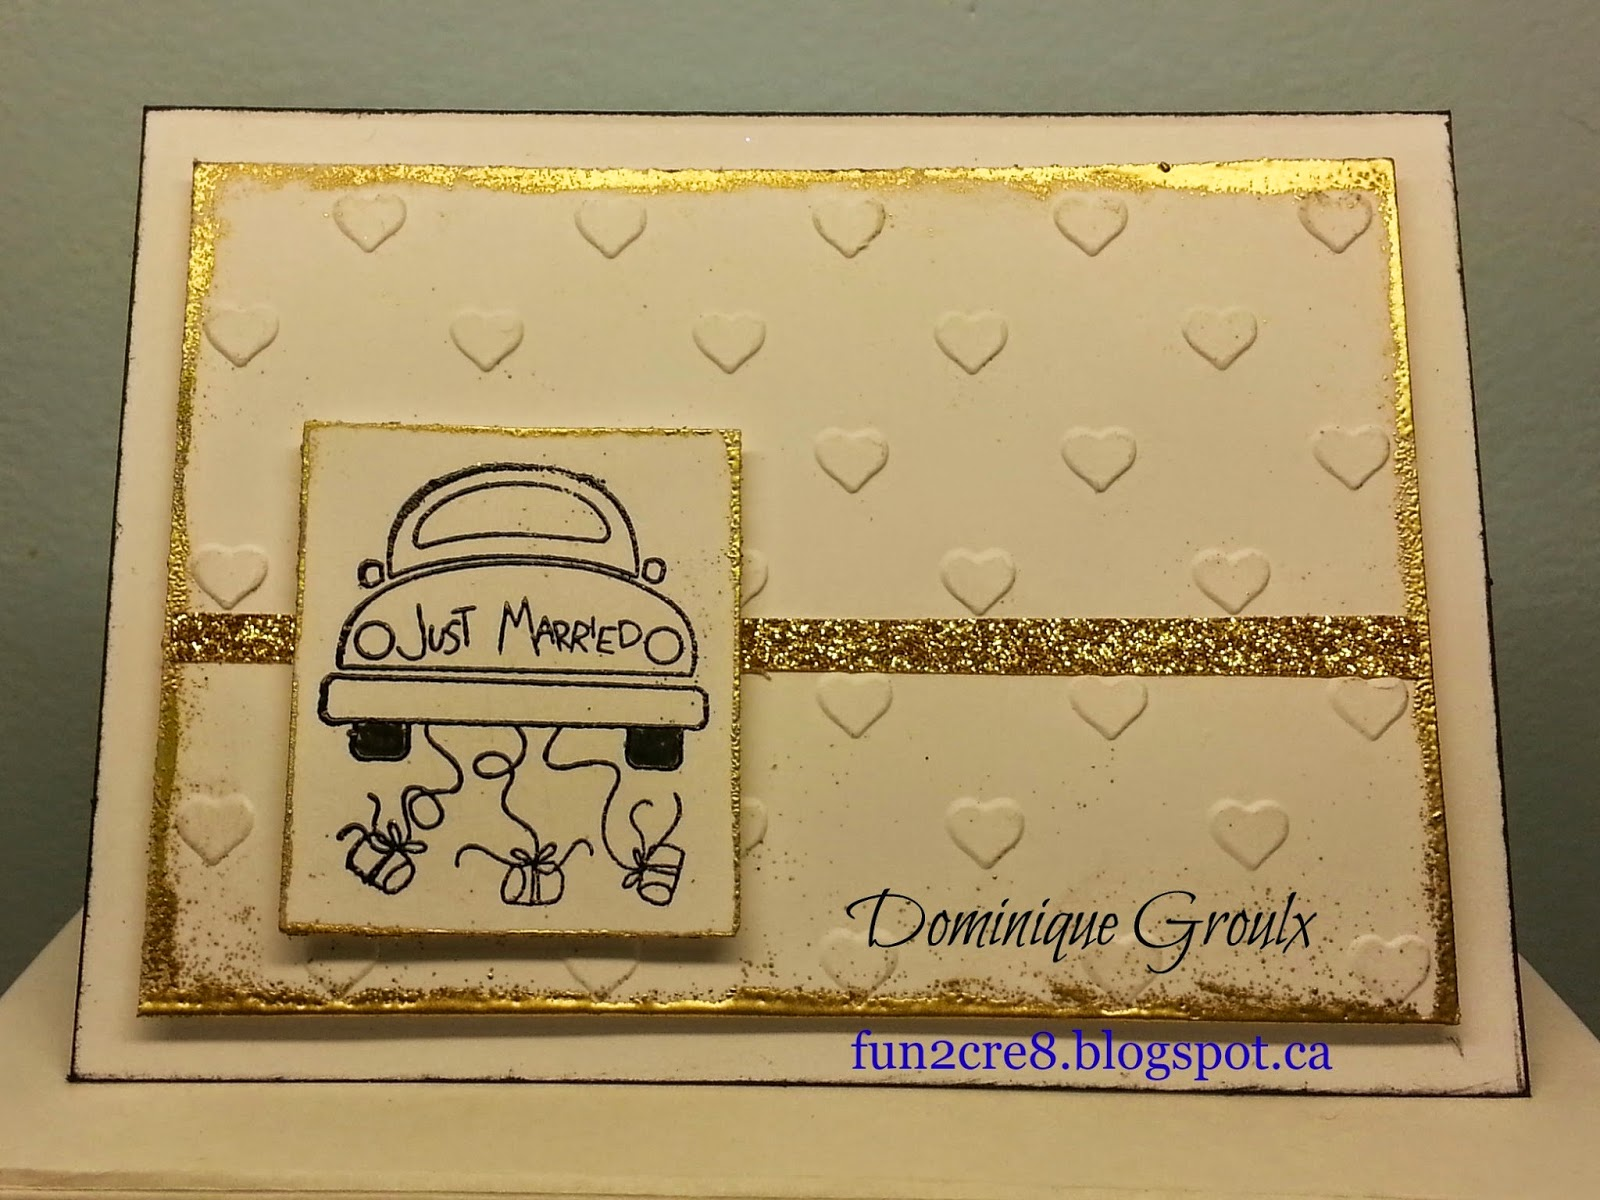 white and gold wedding card by fun2cre8.blogspot.ca